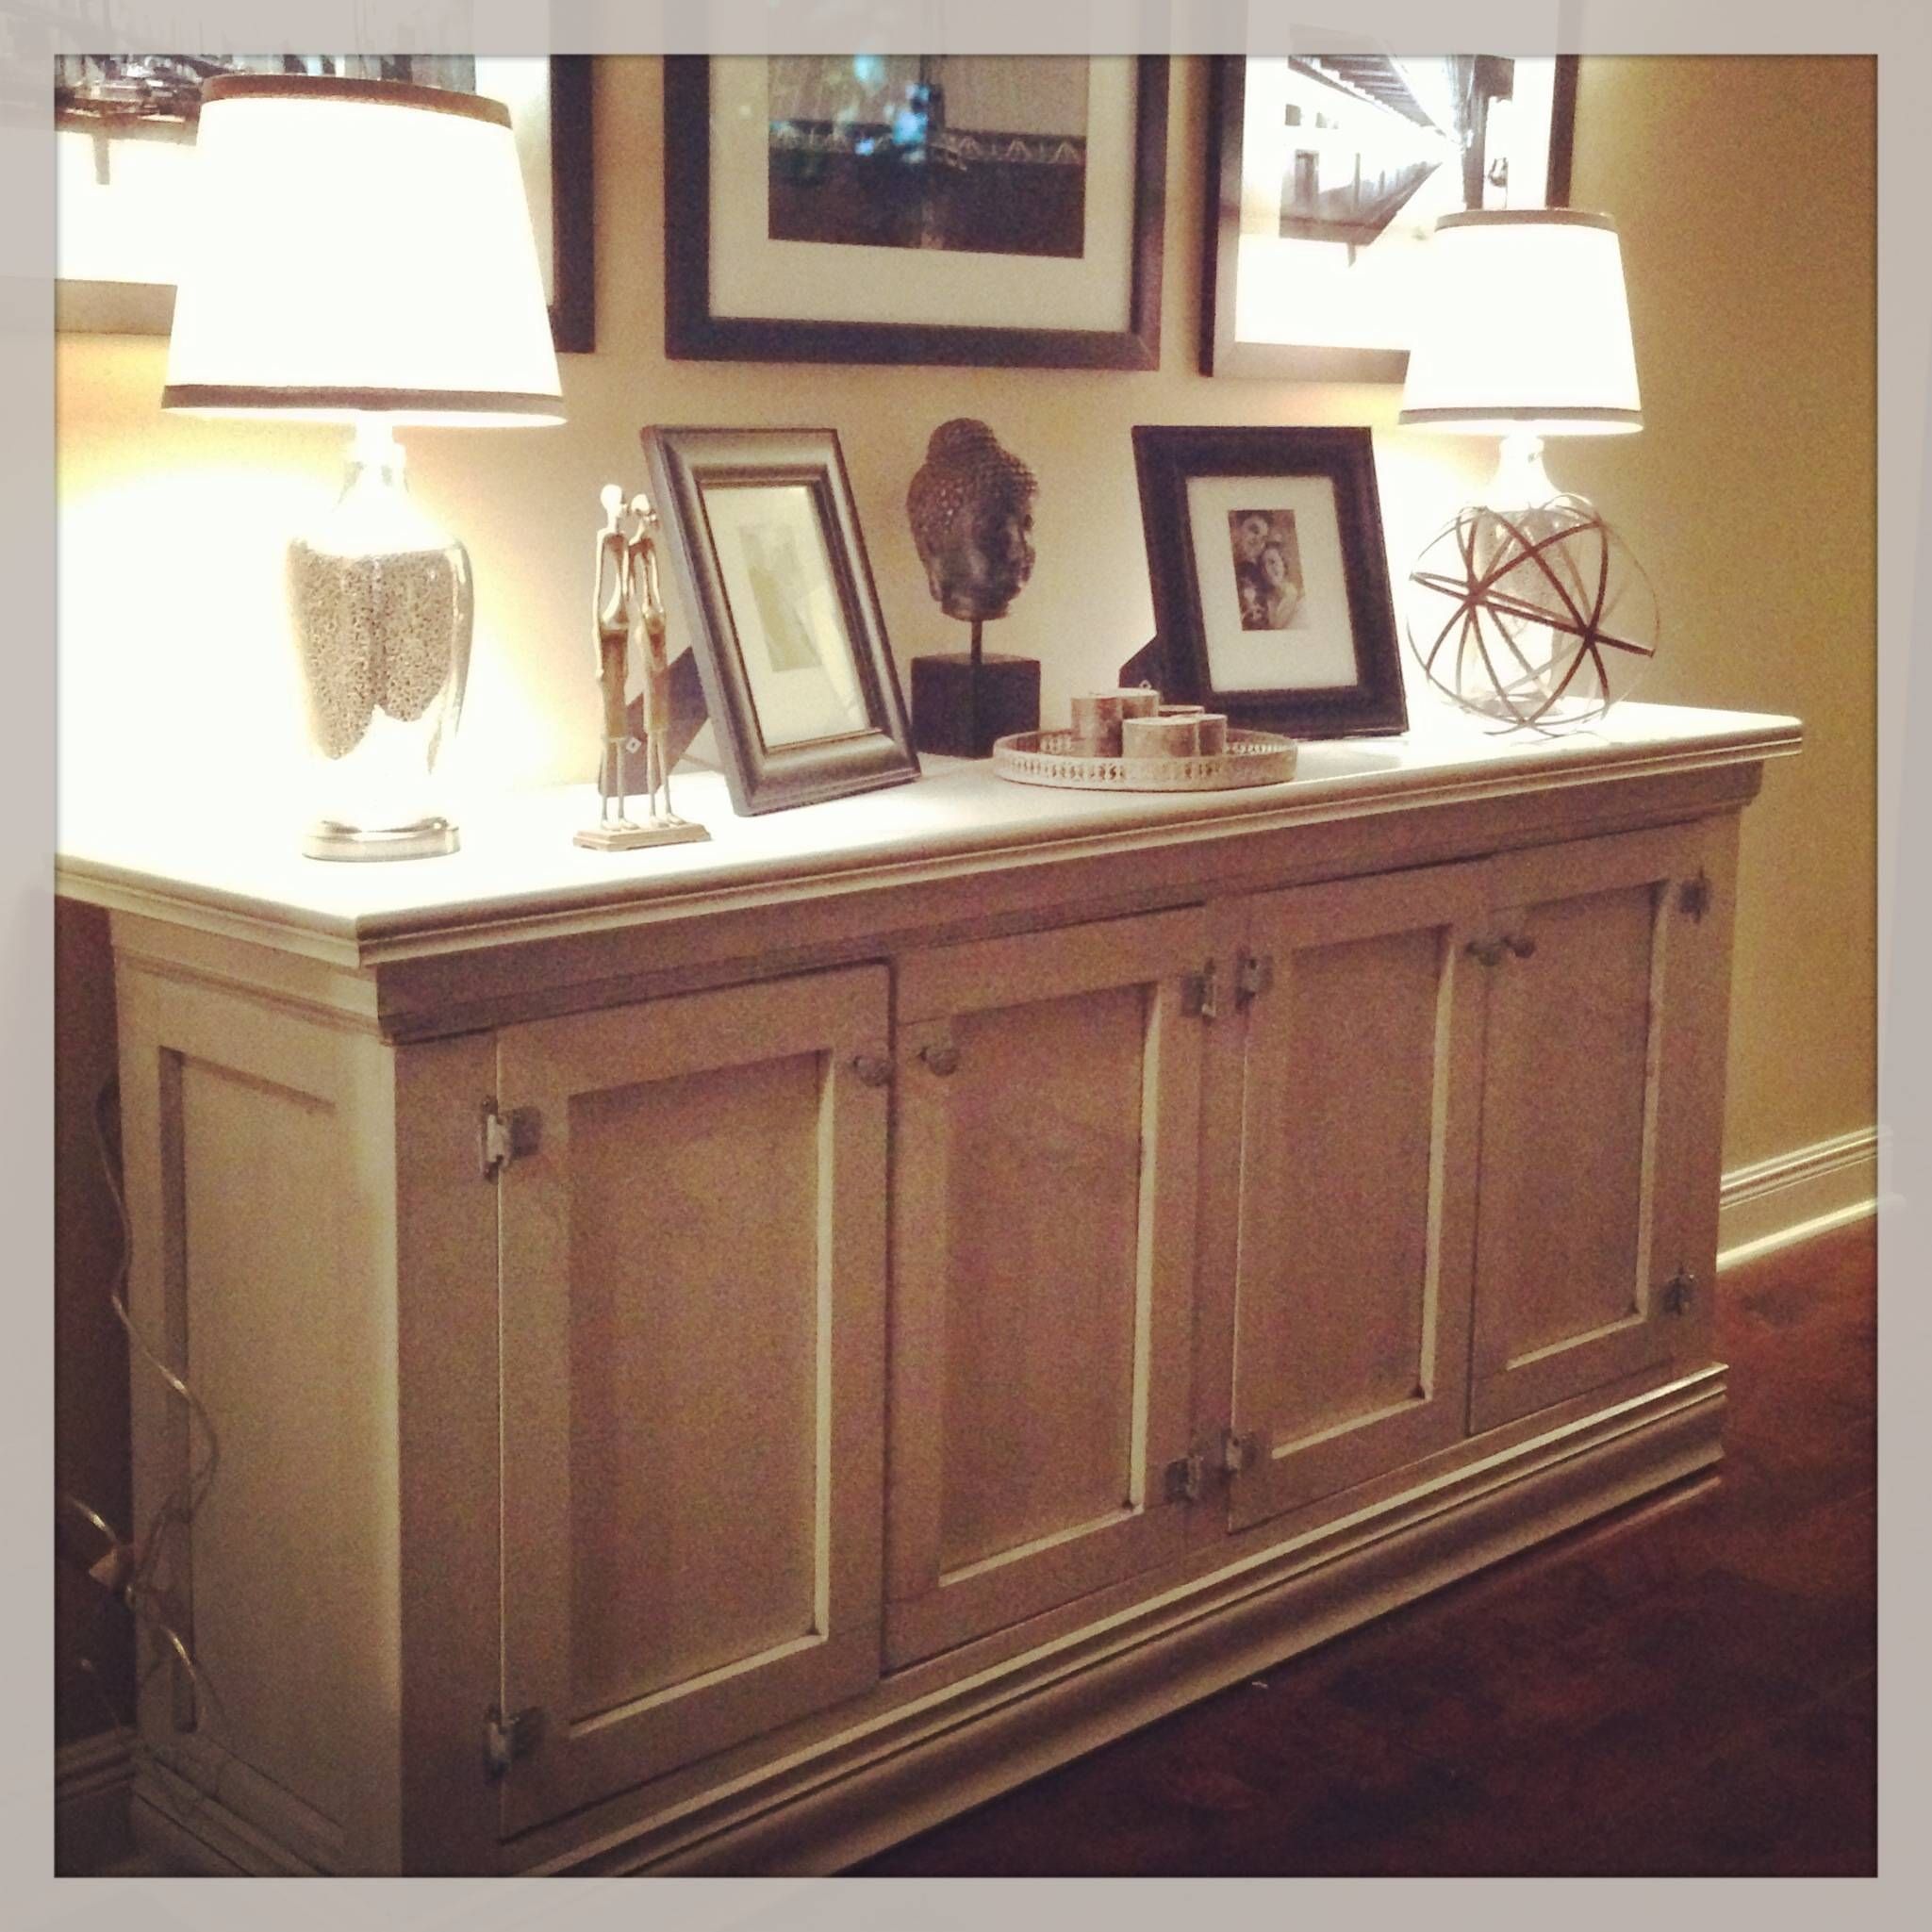 Breathtaking Dining Room Buffets Sideboards Ideas - Best Image intended for Buffet Servers And Sideboards (Image 2 of 15)